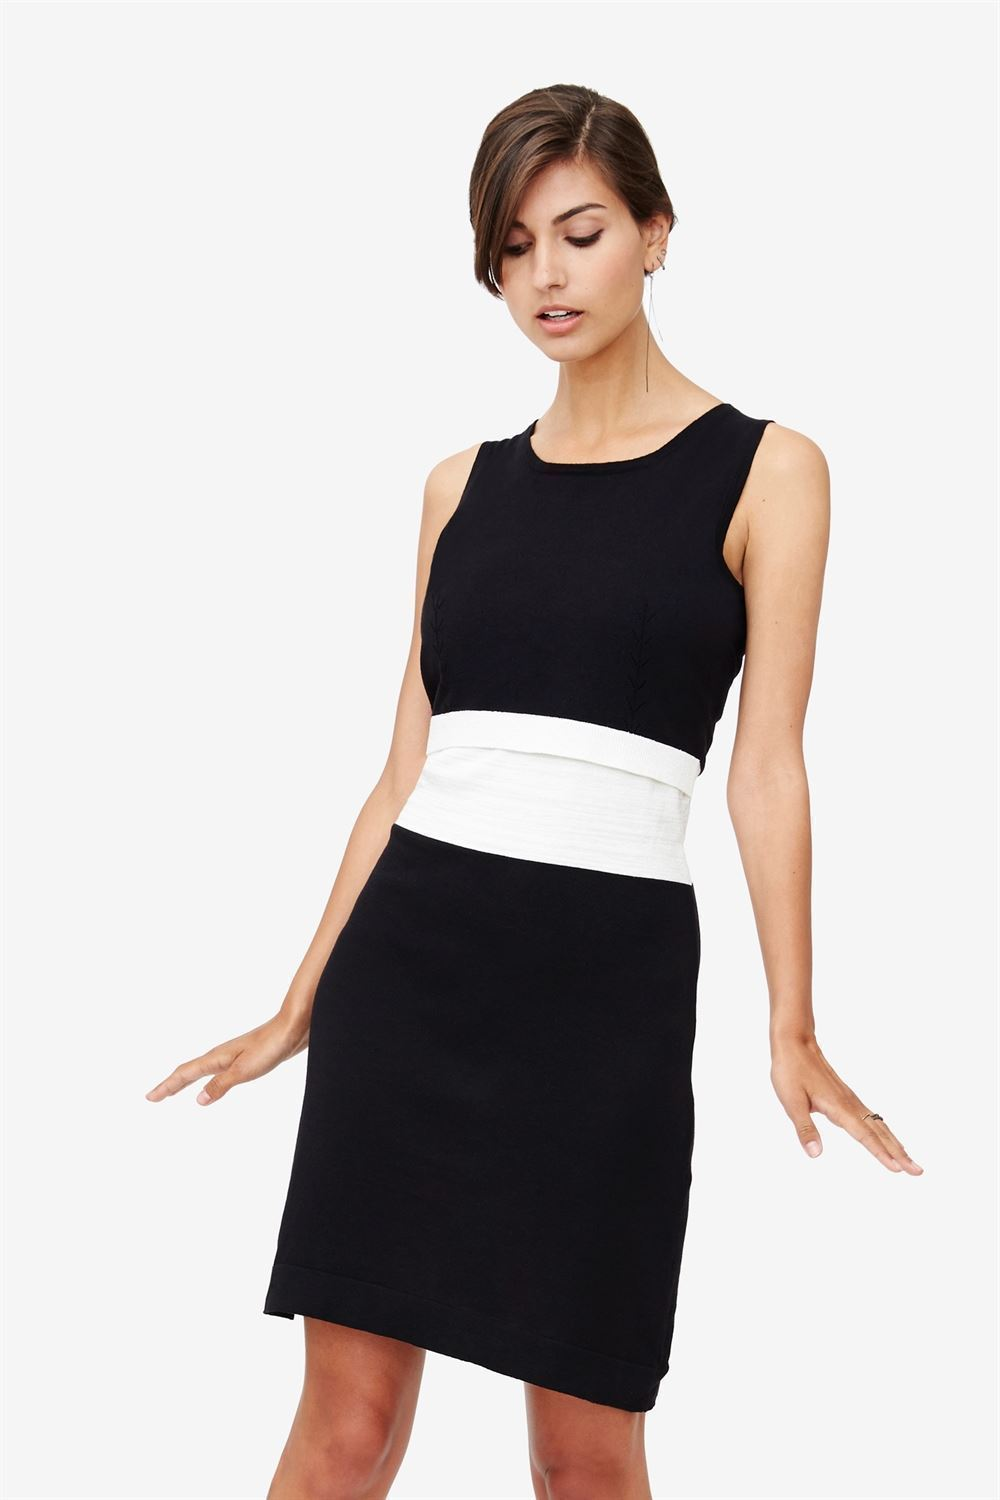 Black nursing dress with slim white waistline - a view from the front